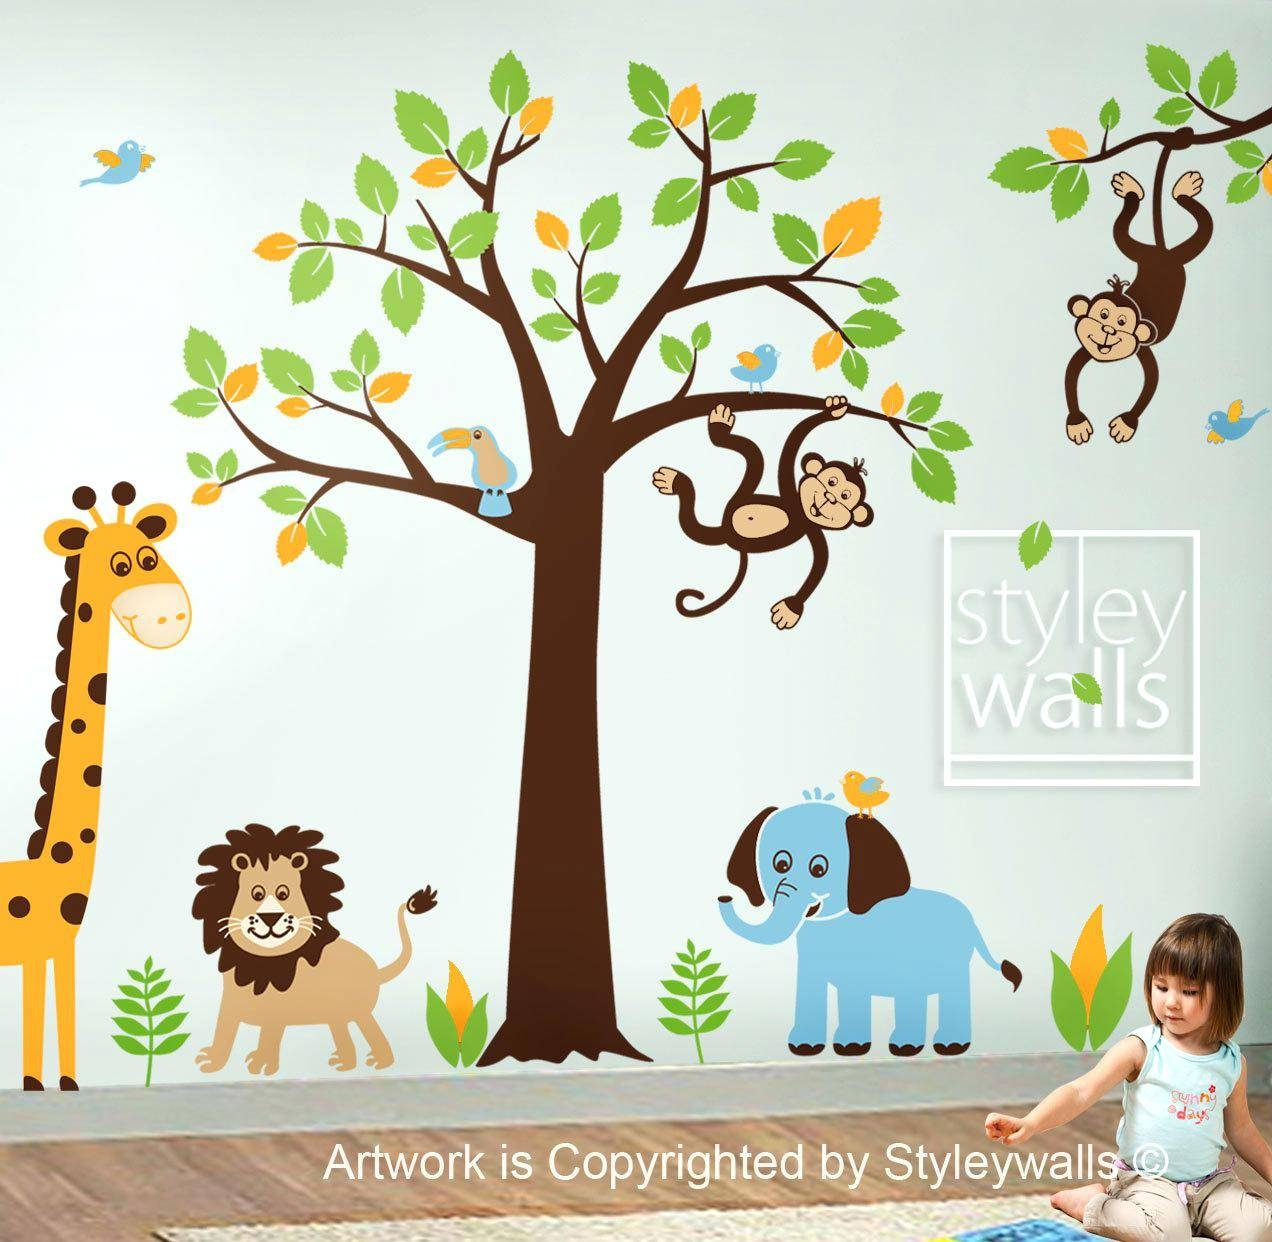 Baby Jungle Wall Decals Deluxe Safari Nursery Wall Art Stickers Intended For Current Jungleanimal Wall Art (View 16 of 20)